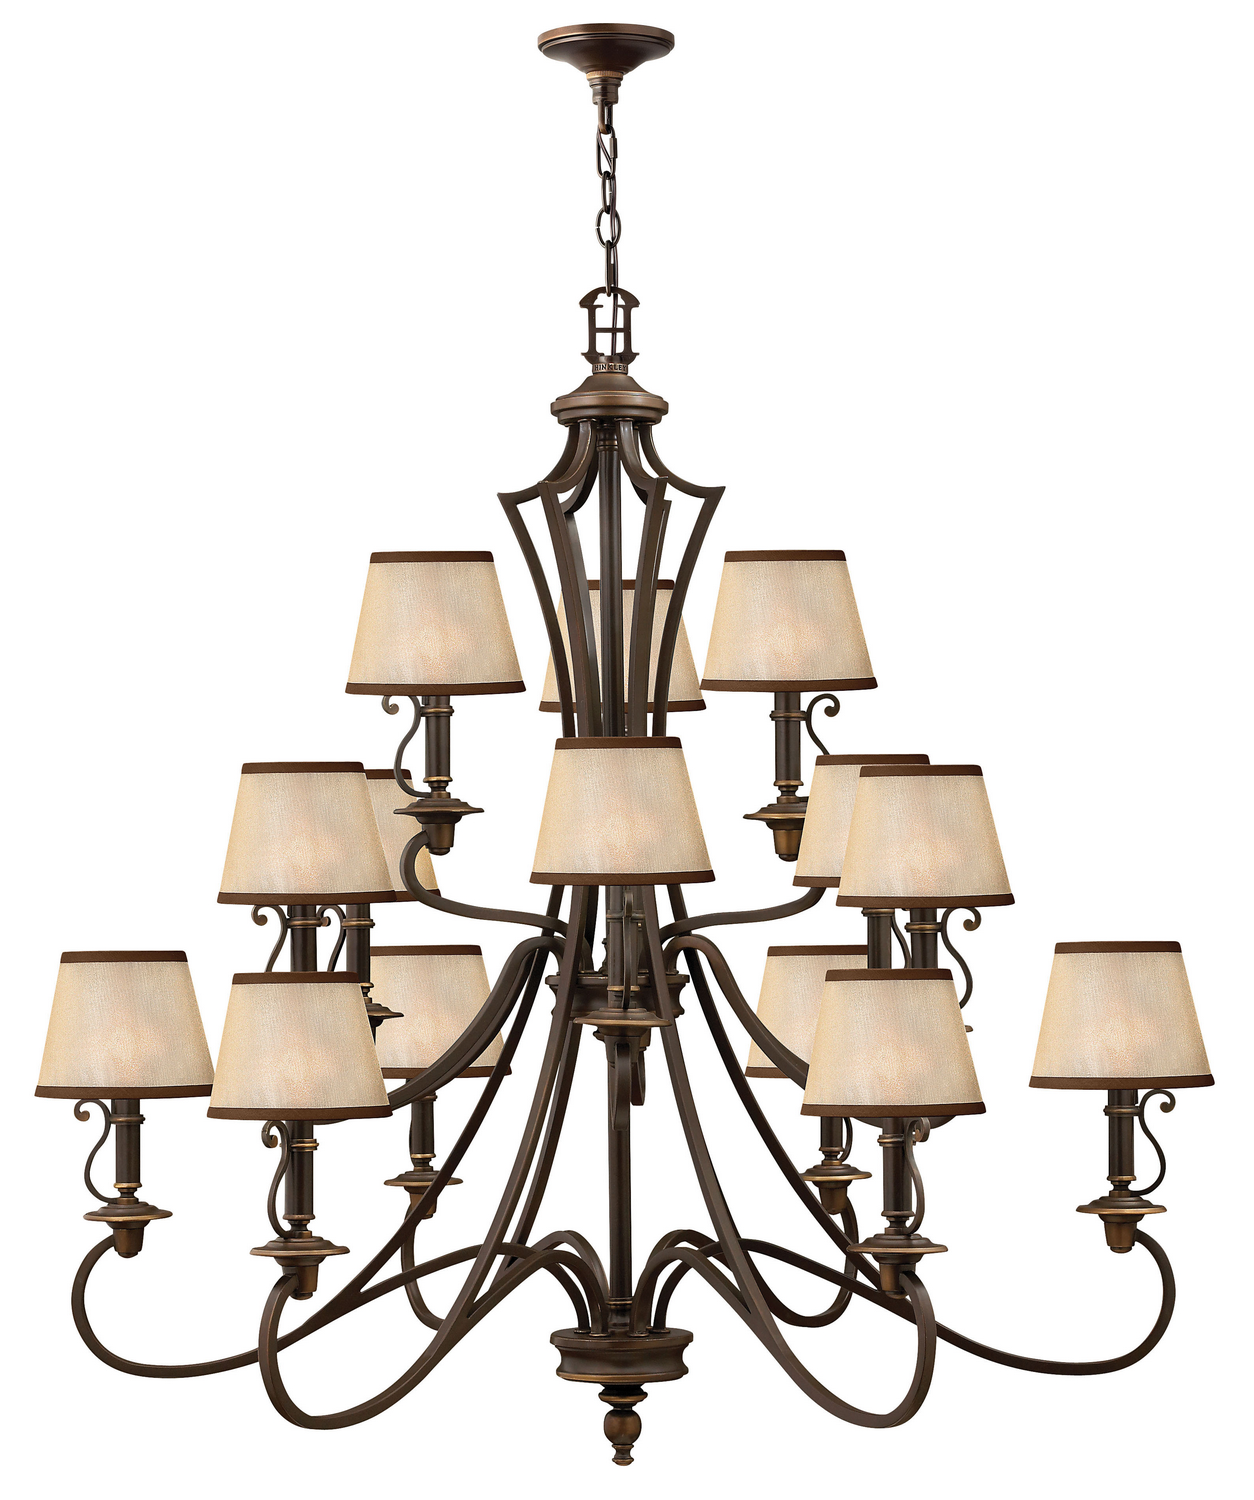 15 Light Foyer Pendant from the Plymouth collection by Hinkley 4249OB